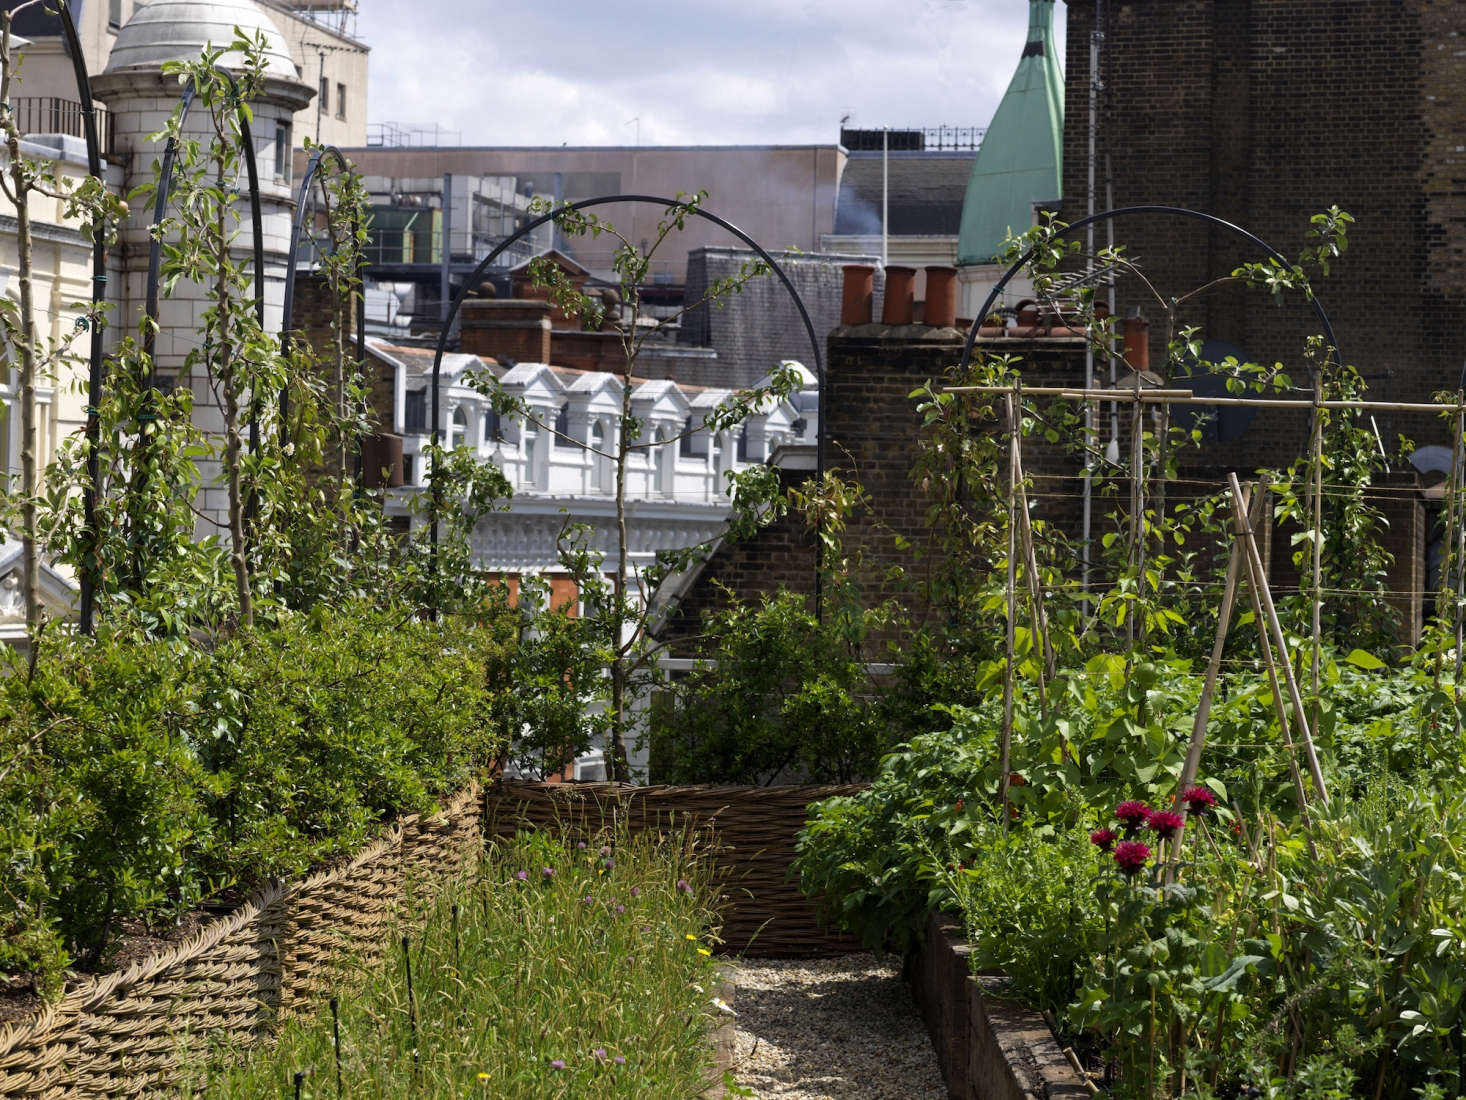 Photograph Courtesy Of Ham Yard Hotel. For More Of This Garden, See Ham Yard